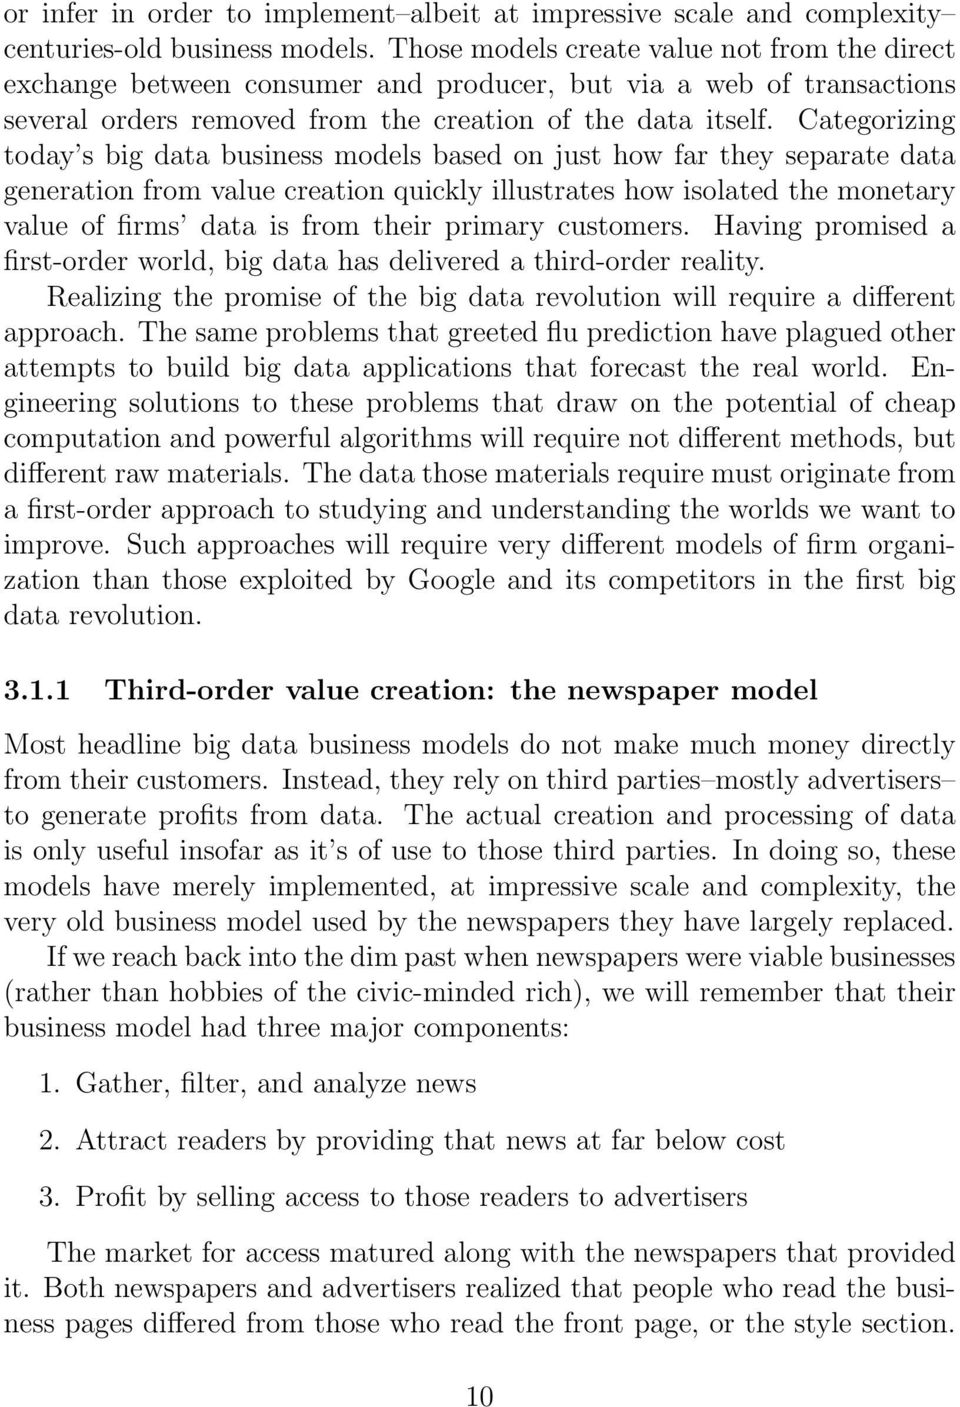 Categorizing today s big data business models based on just how far they separate data generation from value creation quickly illustrates how isolated the monetary value of firms data is from their